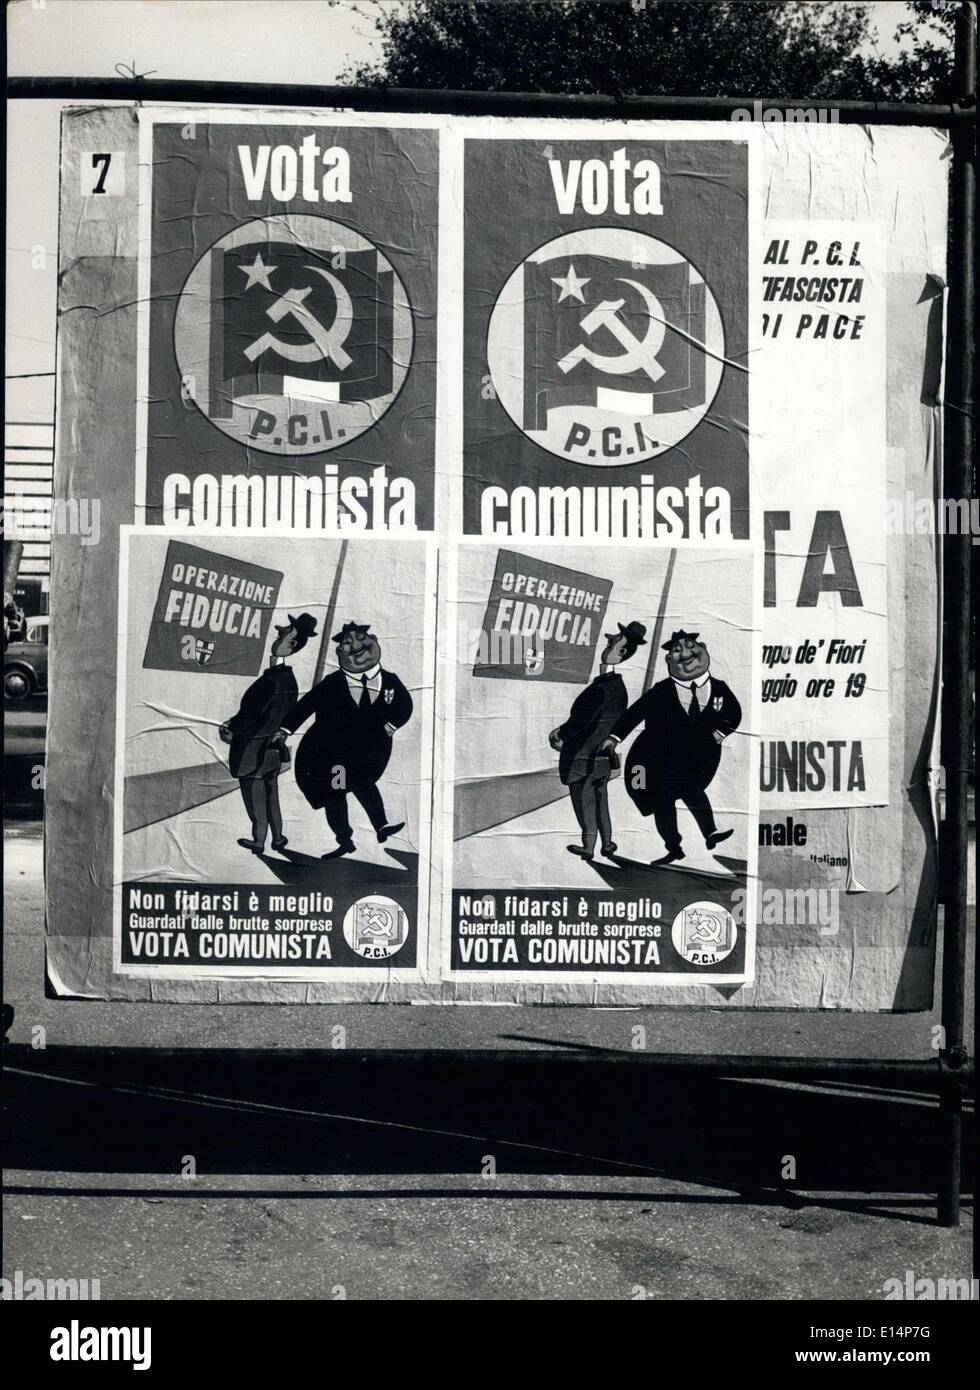 Apr. 12, 2012 - Communist Party Posters for Upcoming Elections in Rome - Stock Image